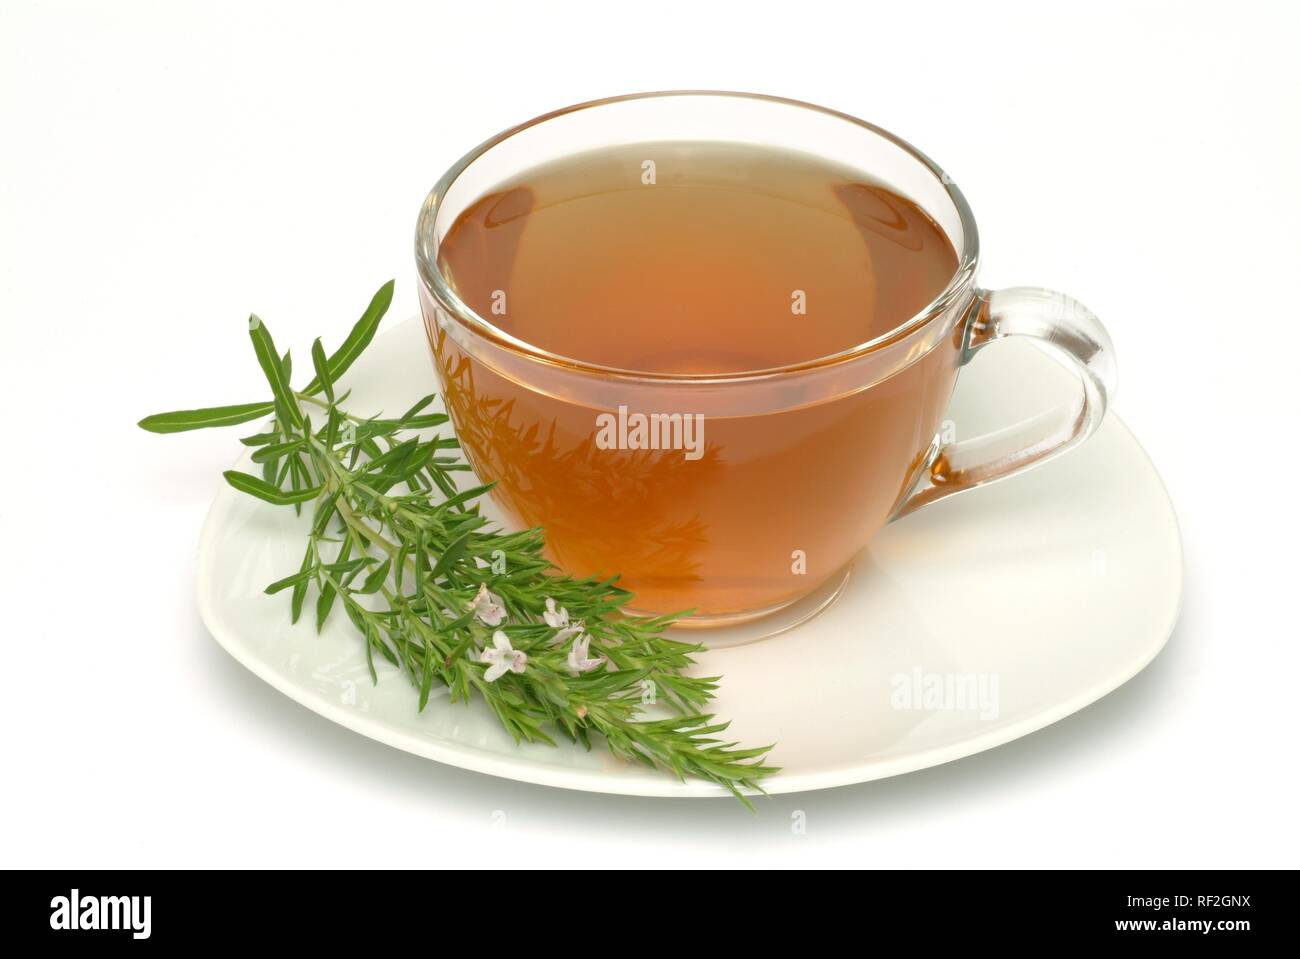 Summer Savory (Satureja hortensis), herbal tea - Stock Image